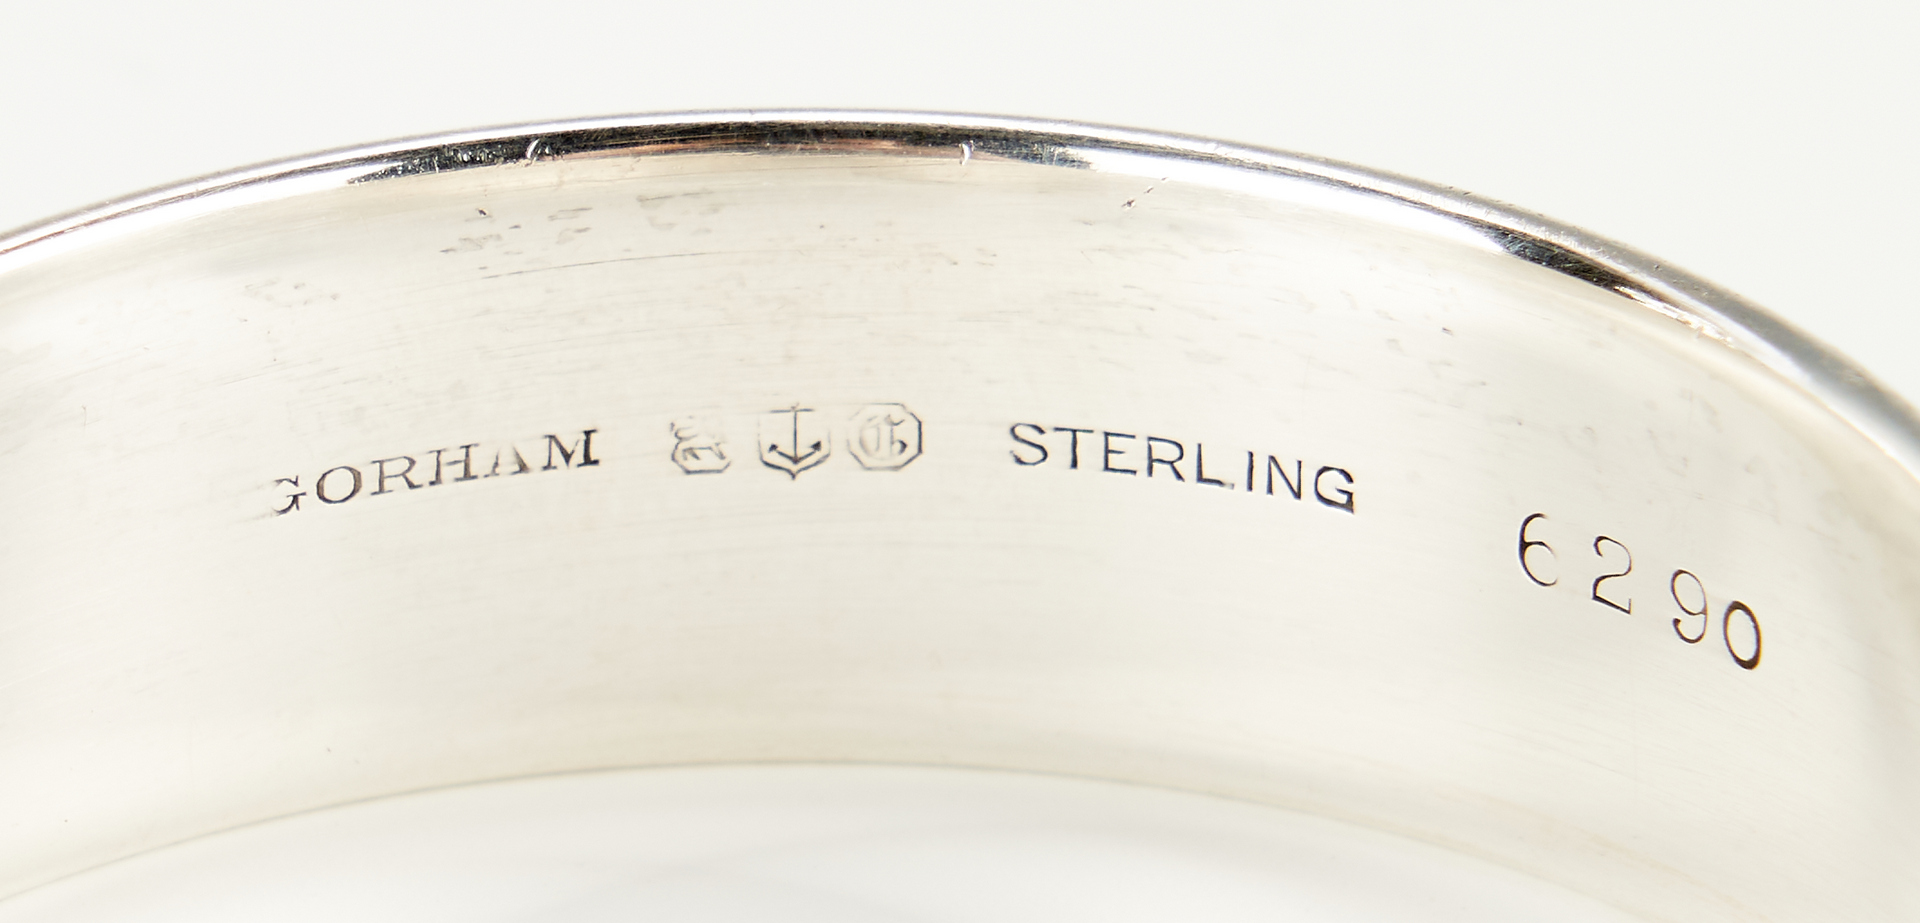 Lot 1232: 29 Pcs. Assorted Sterling Silver